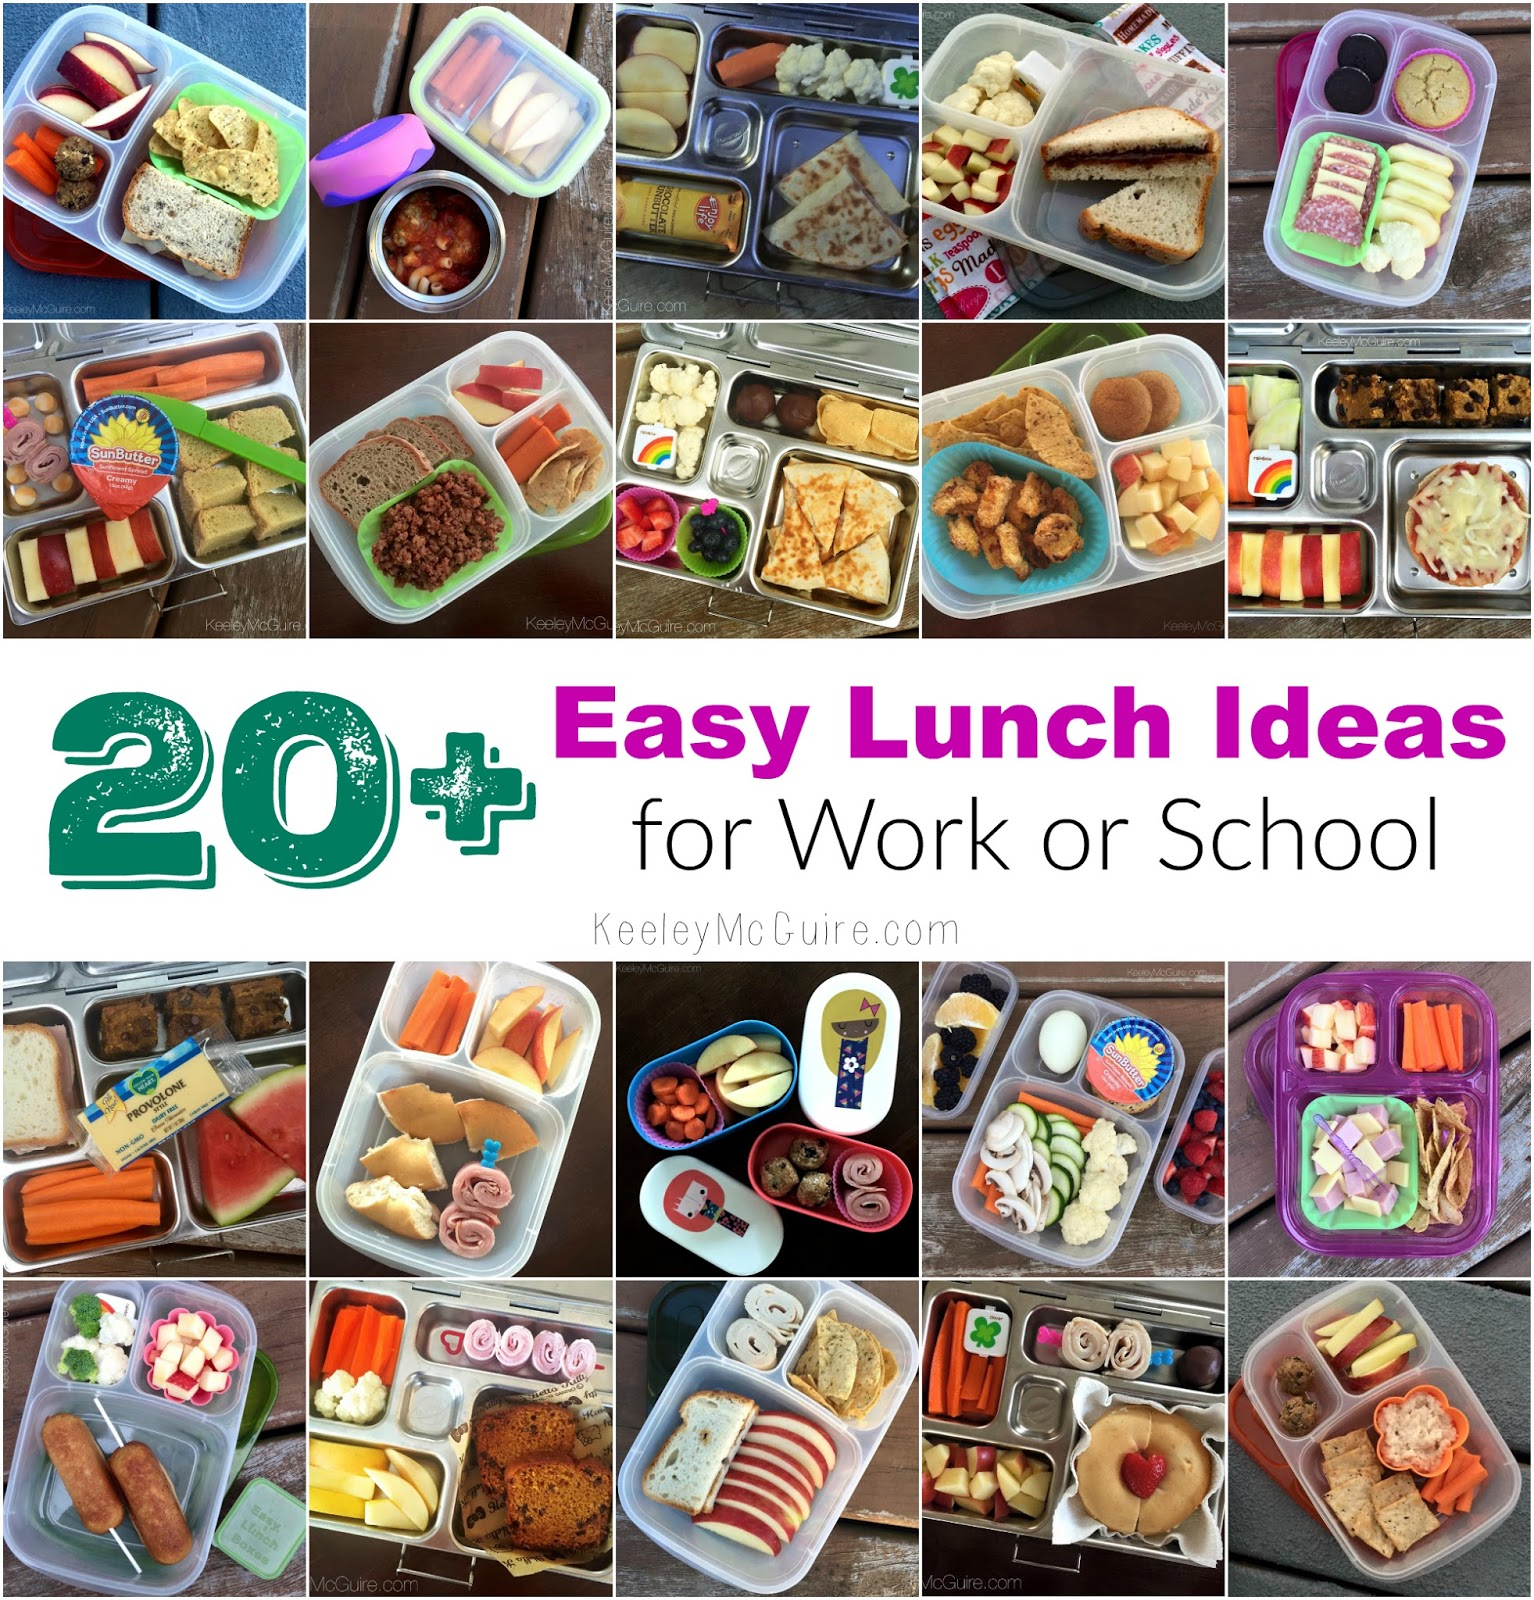 Gluten free allergy friendly 20 easy lunch ideas for work or 20 easy lunch ideas for work or school forumfinder Choice Image